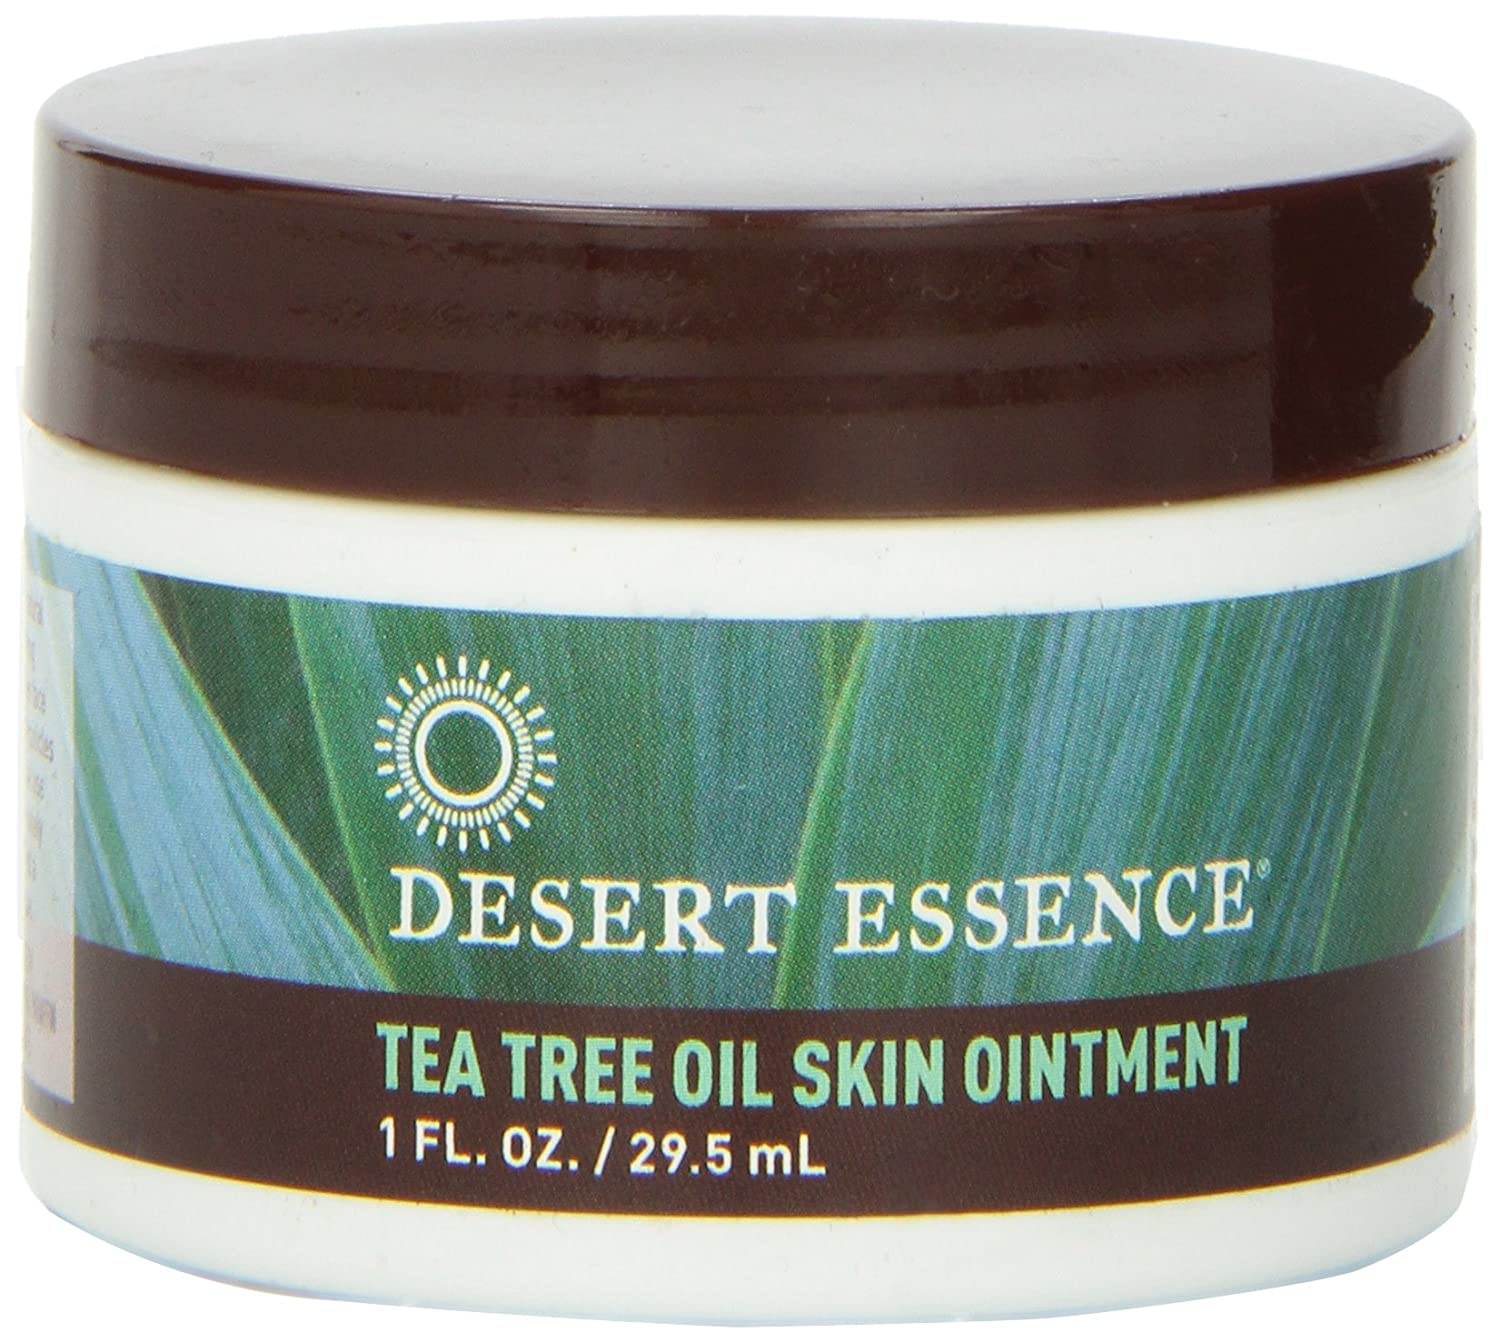 Desert Essence Tea Tree Oil Skin Ointment 30Ml (並行輸入品) B00199YUBG